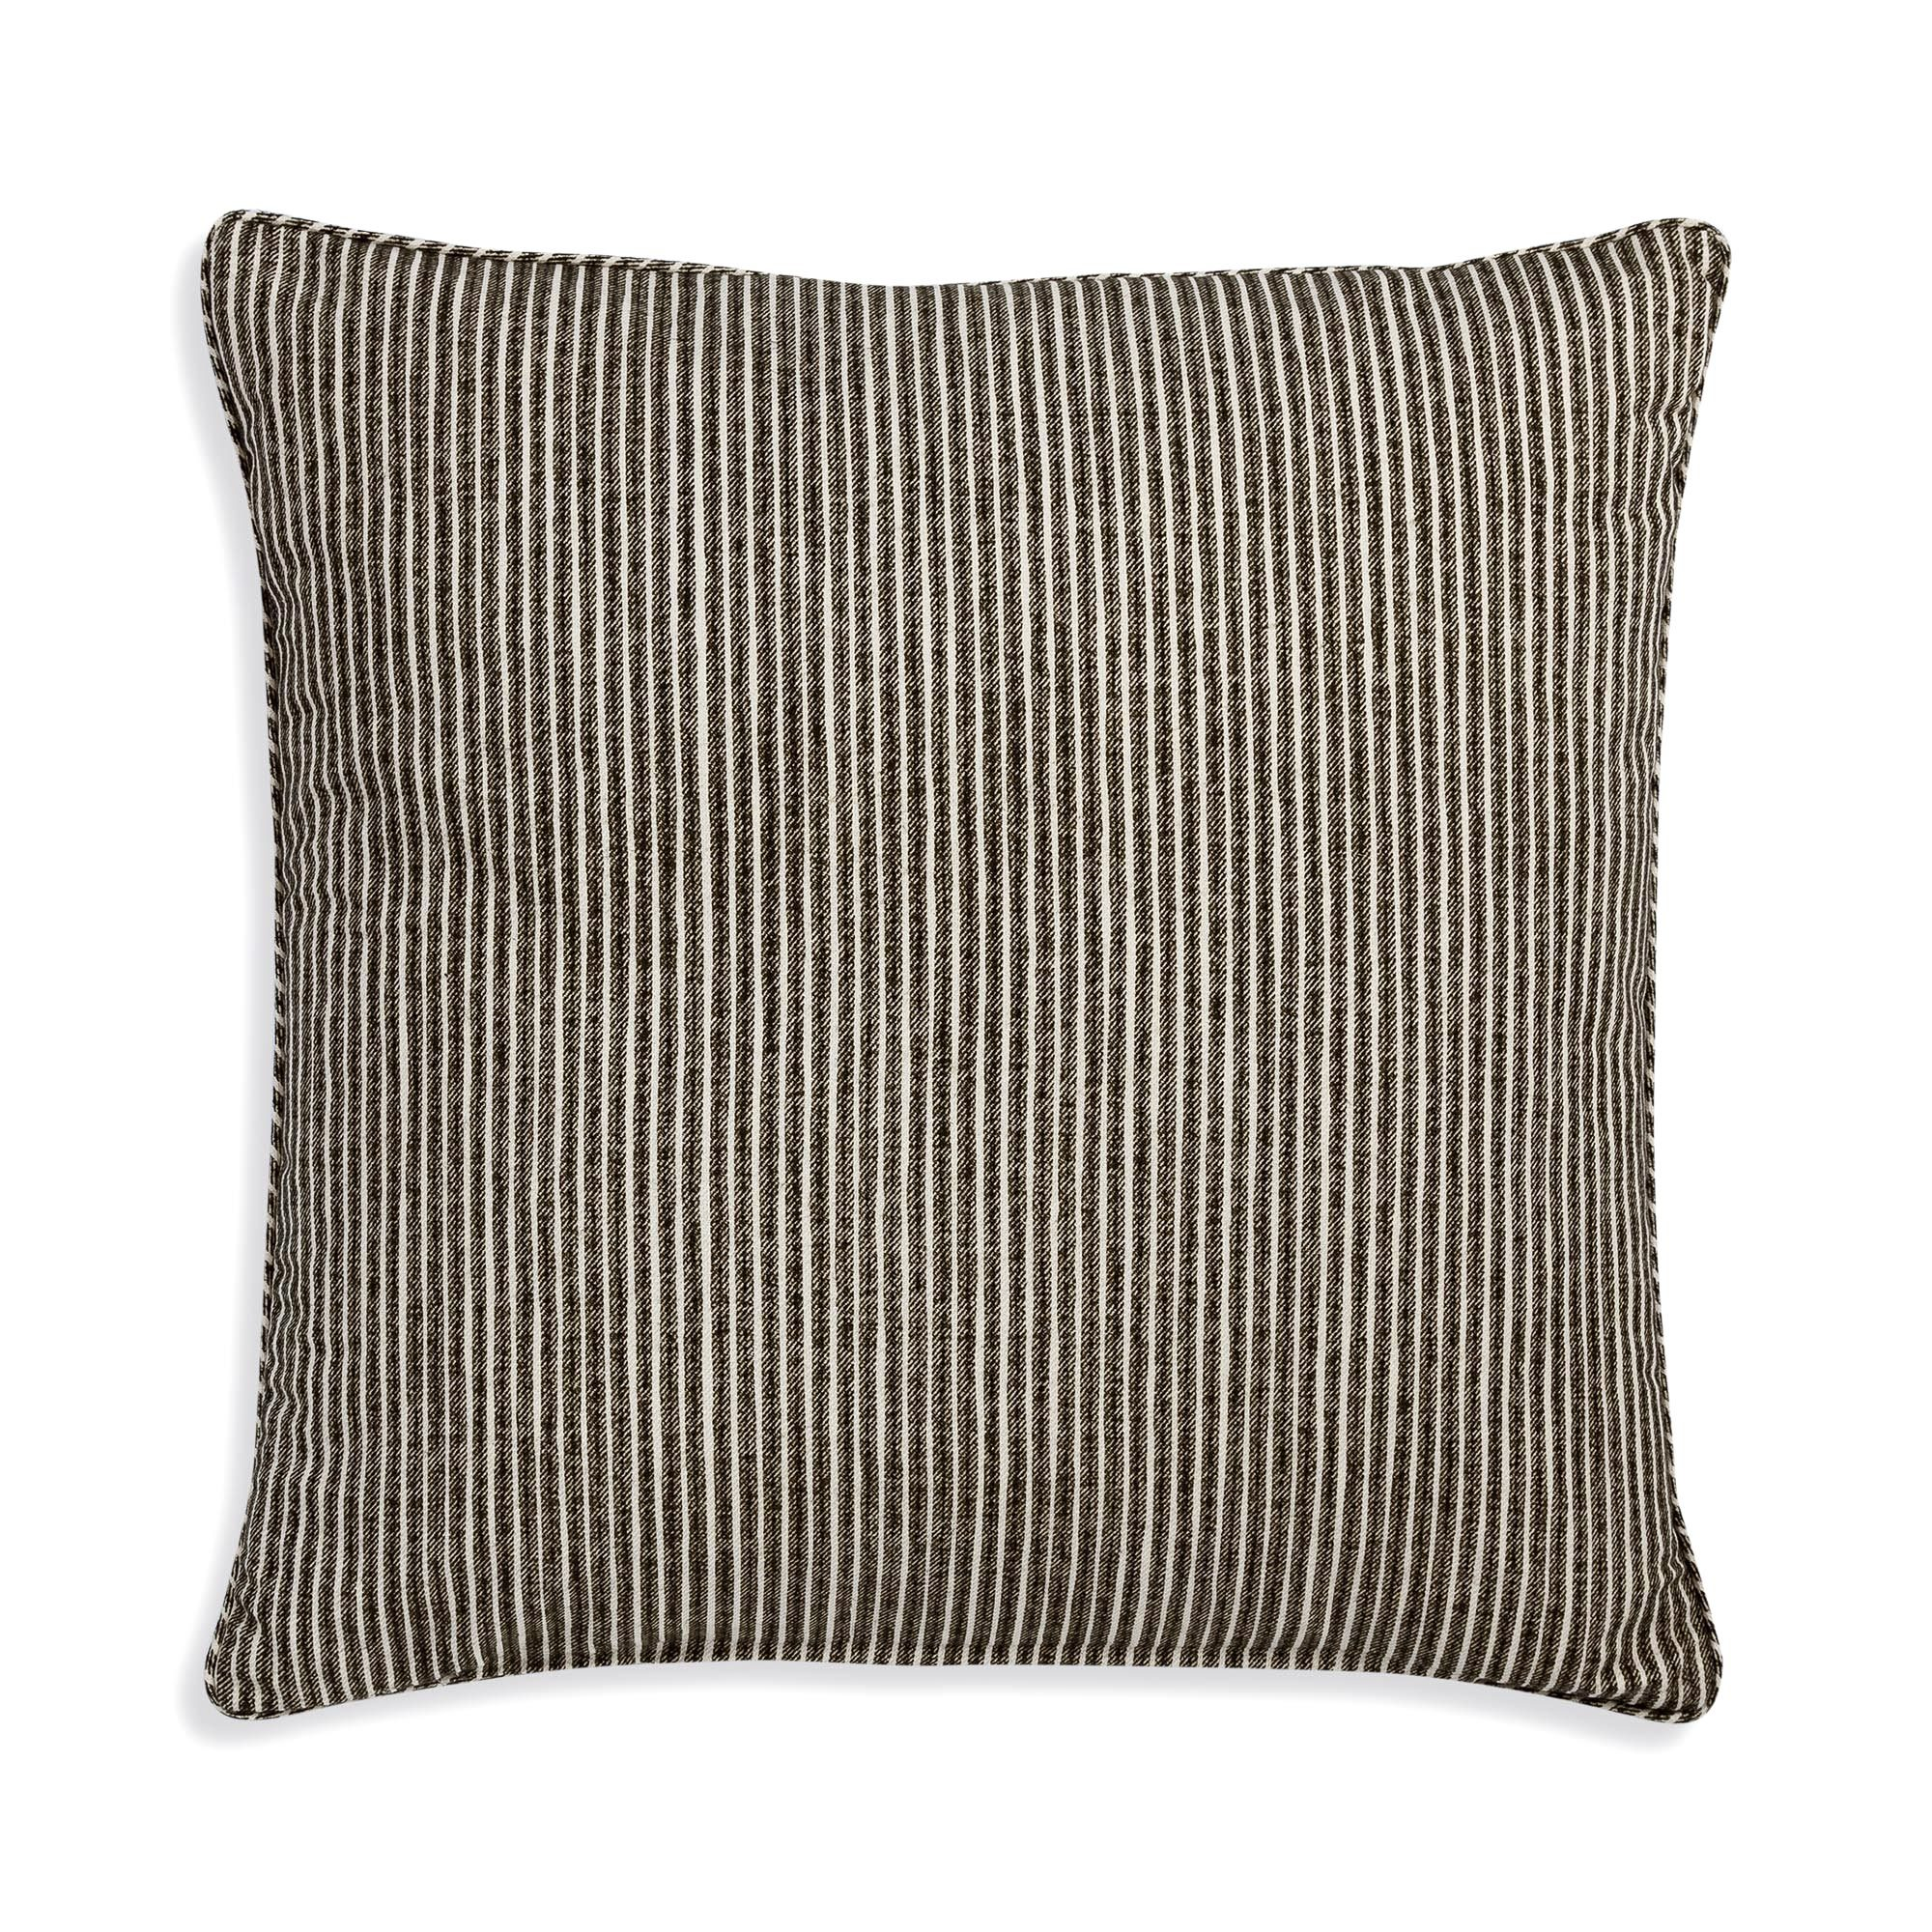 Small Square Cushion in Neutral Poulton Stripe